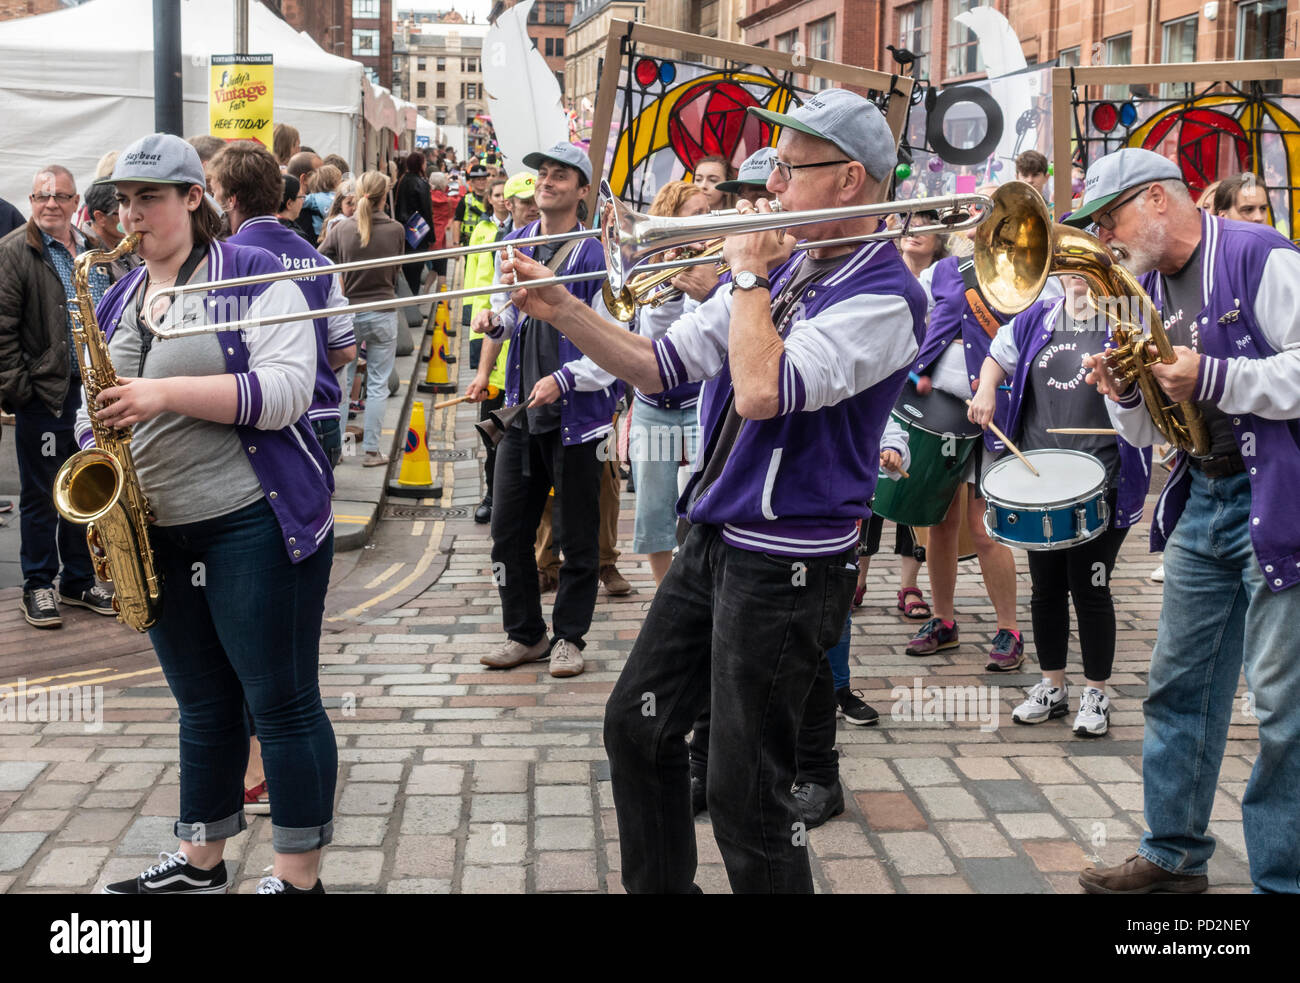 The Baybeat Street Band from Morecombe performing in the Carnival Procession of the Merchant City Festival: part of Festival 2018, Glasgow - Stock Image